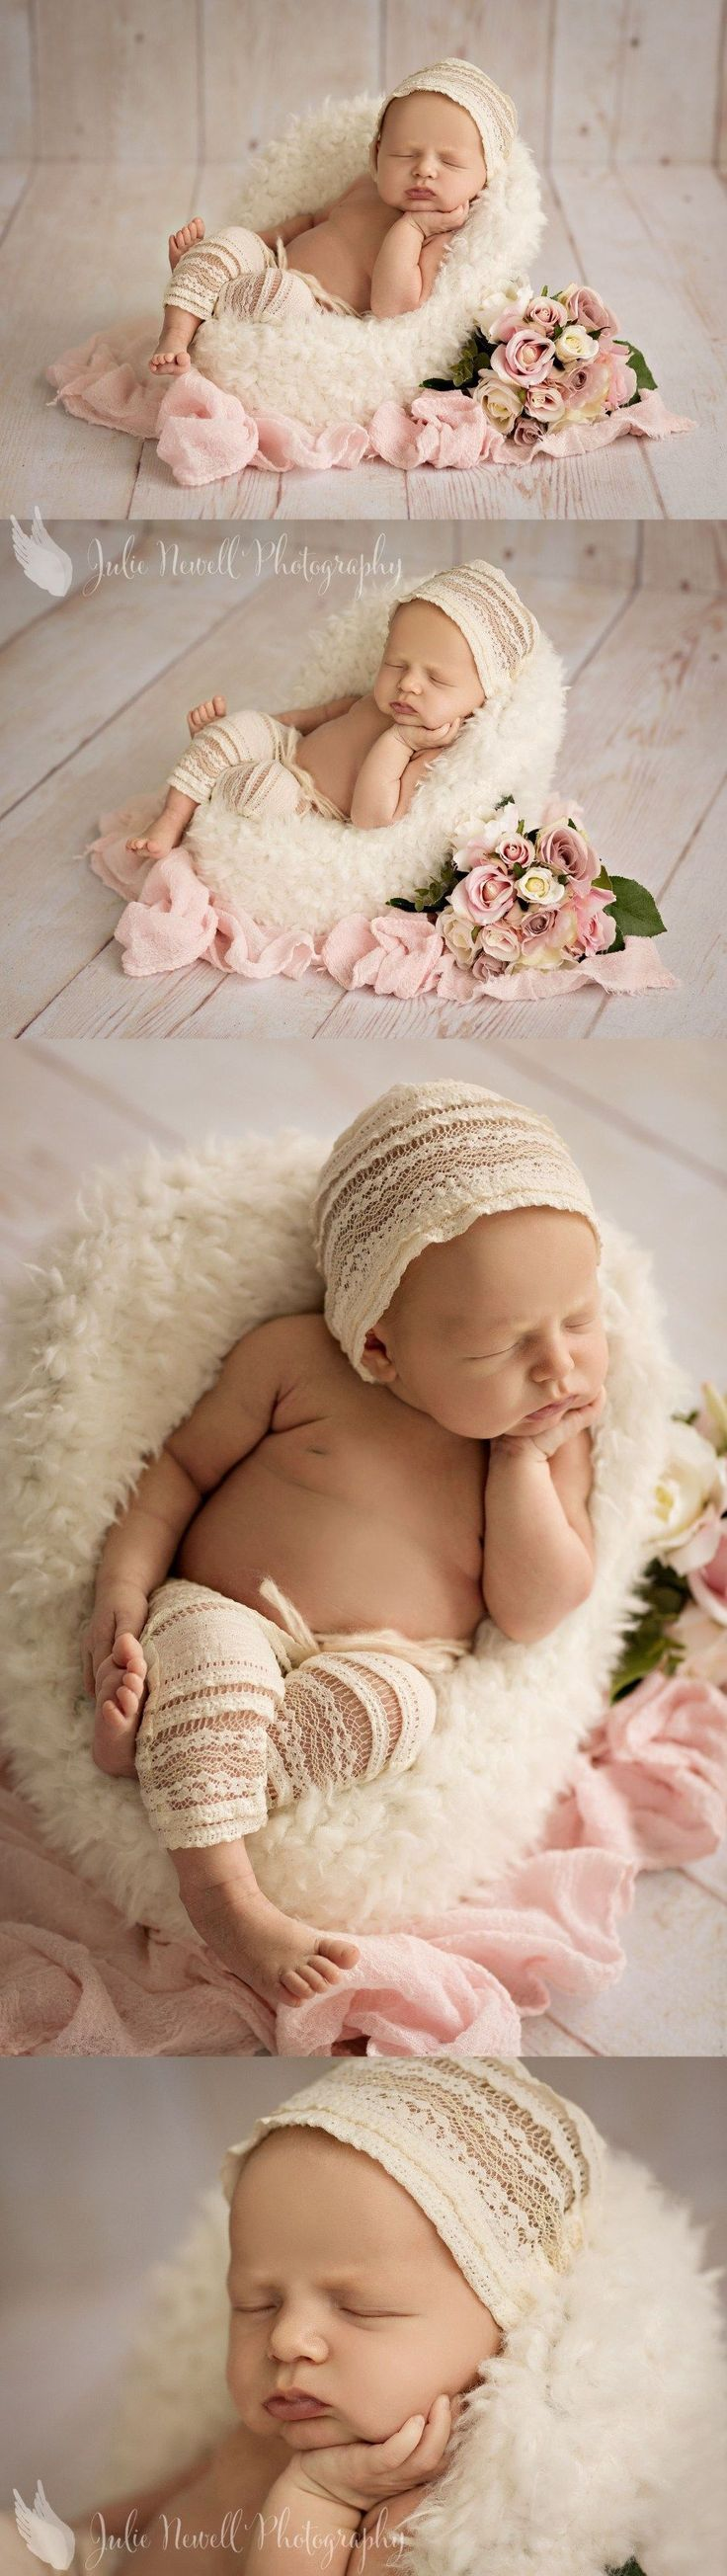 Julie Newell Photography » Lakelyn Grace Draska | Chicago Newborn Photographer